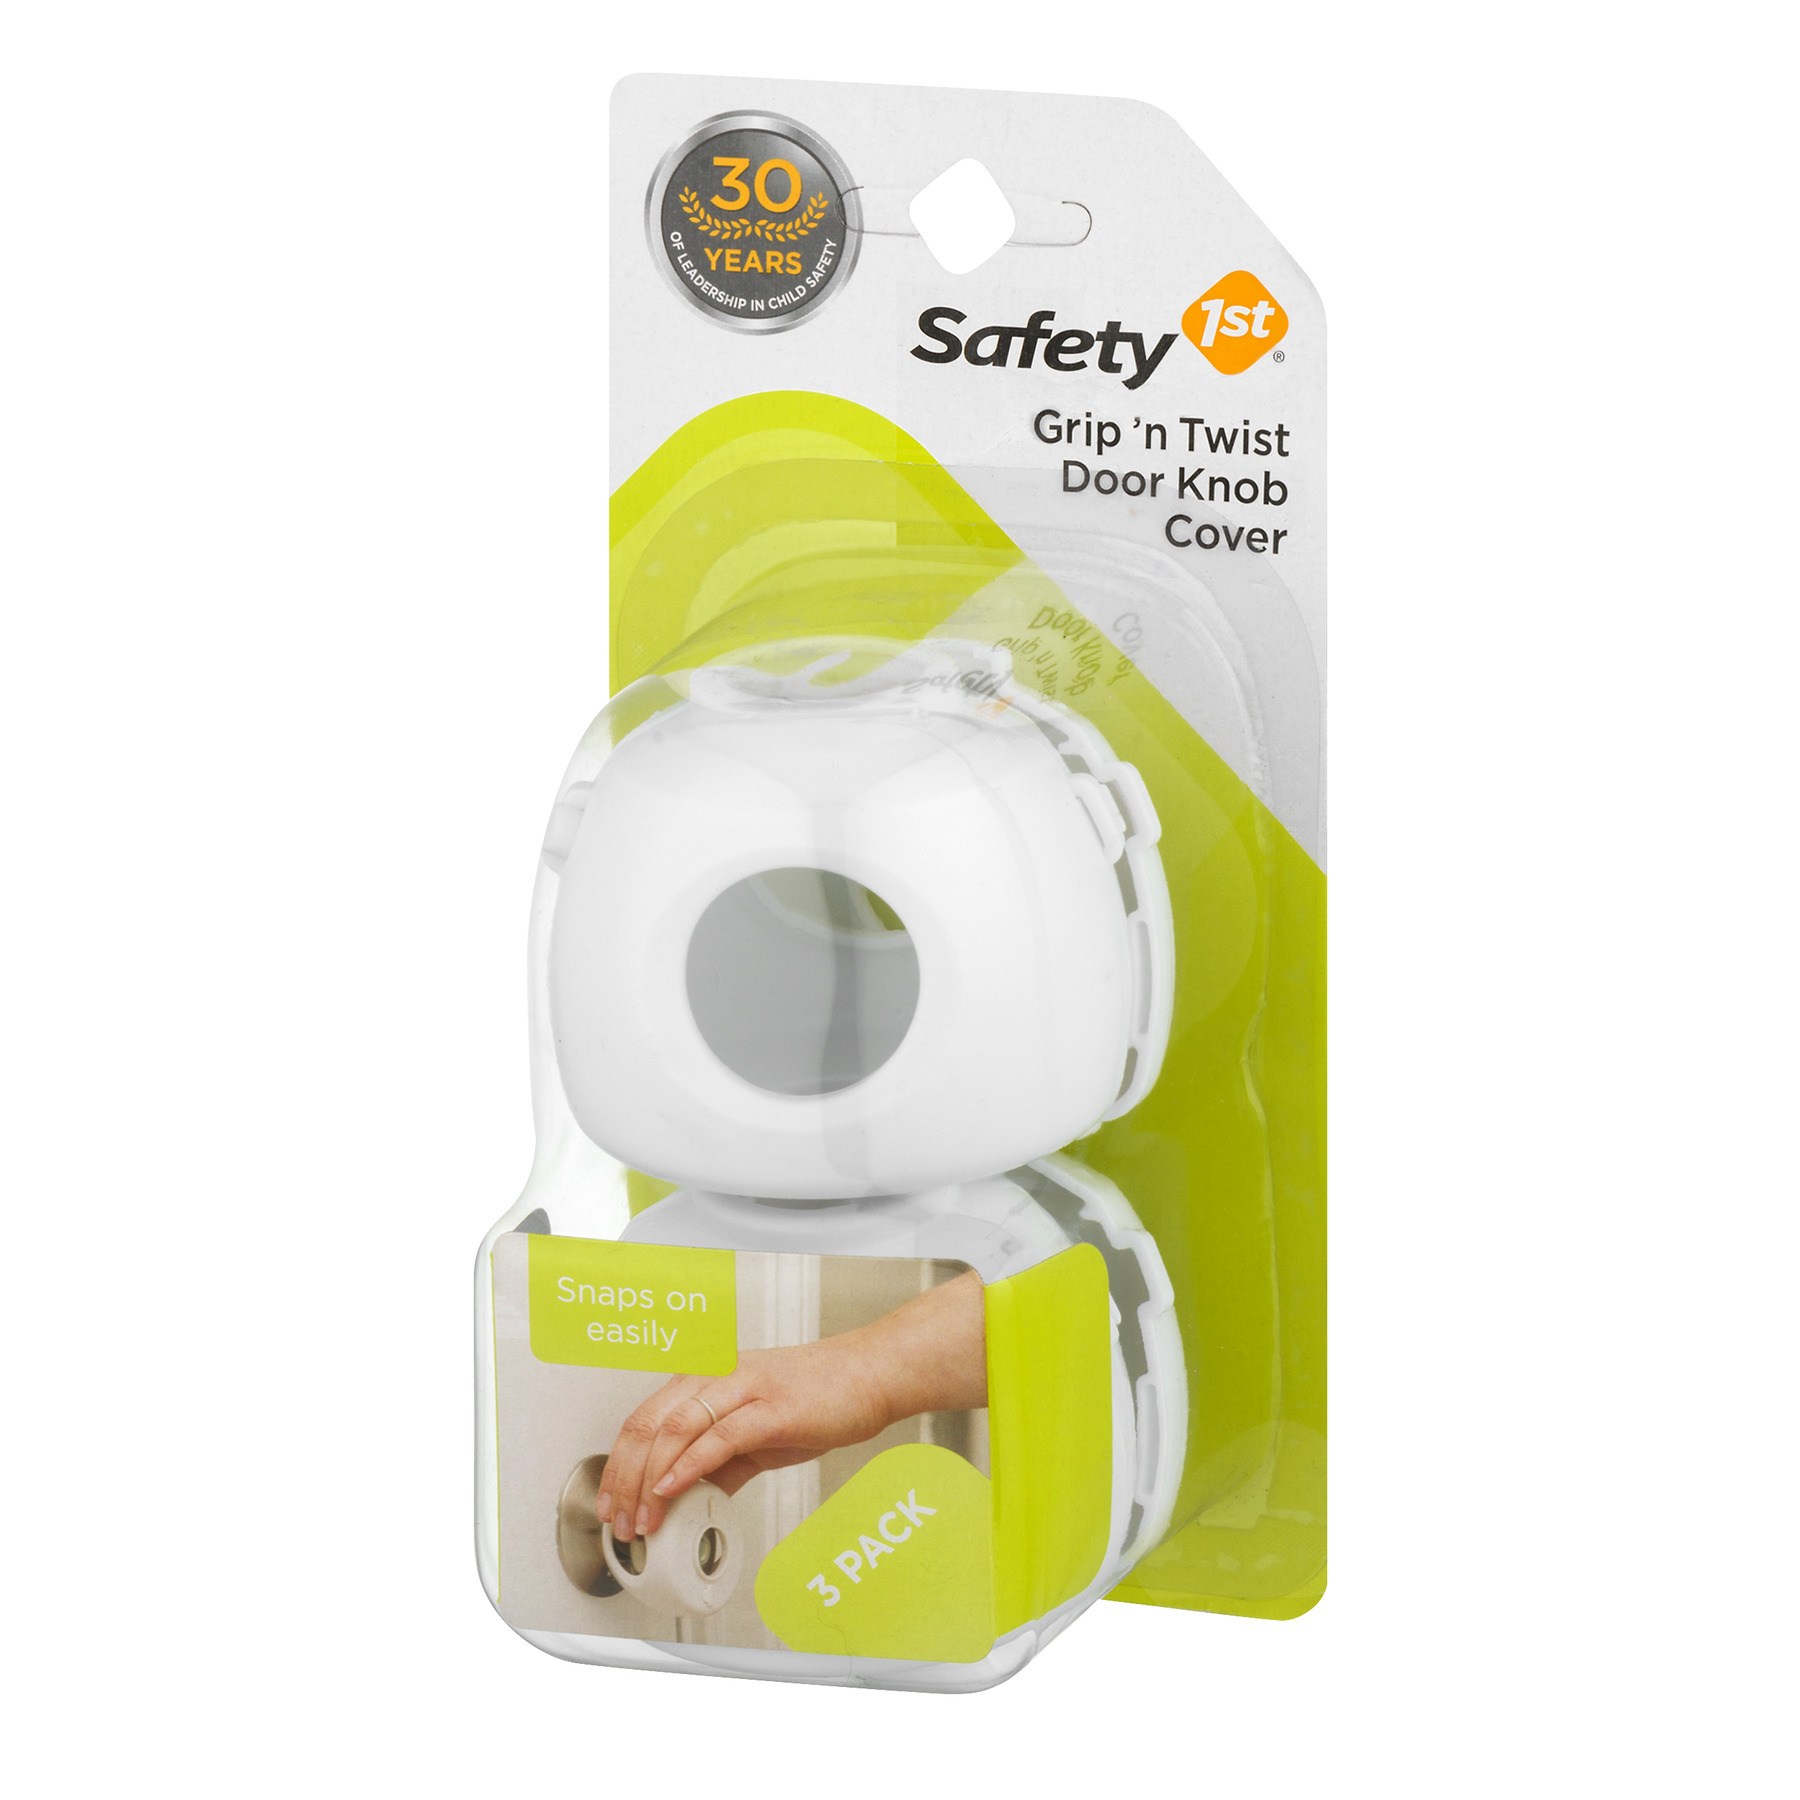 Safety 1st Grip n Twist Door Knob Covers White 3 Pack